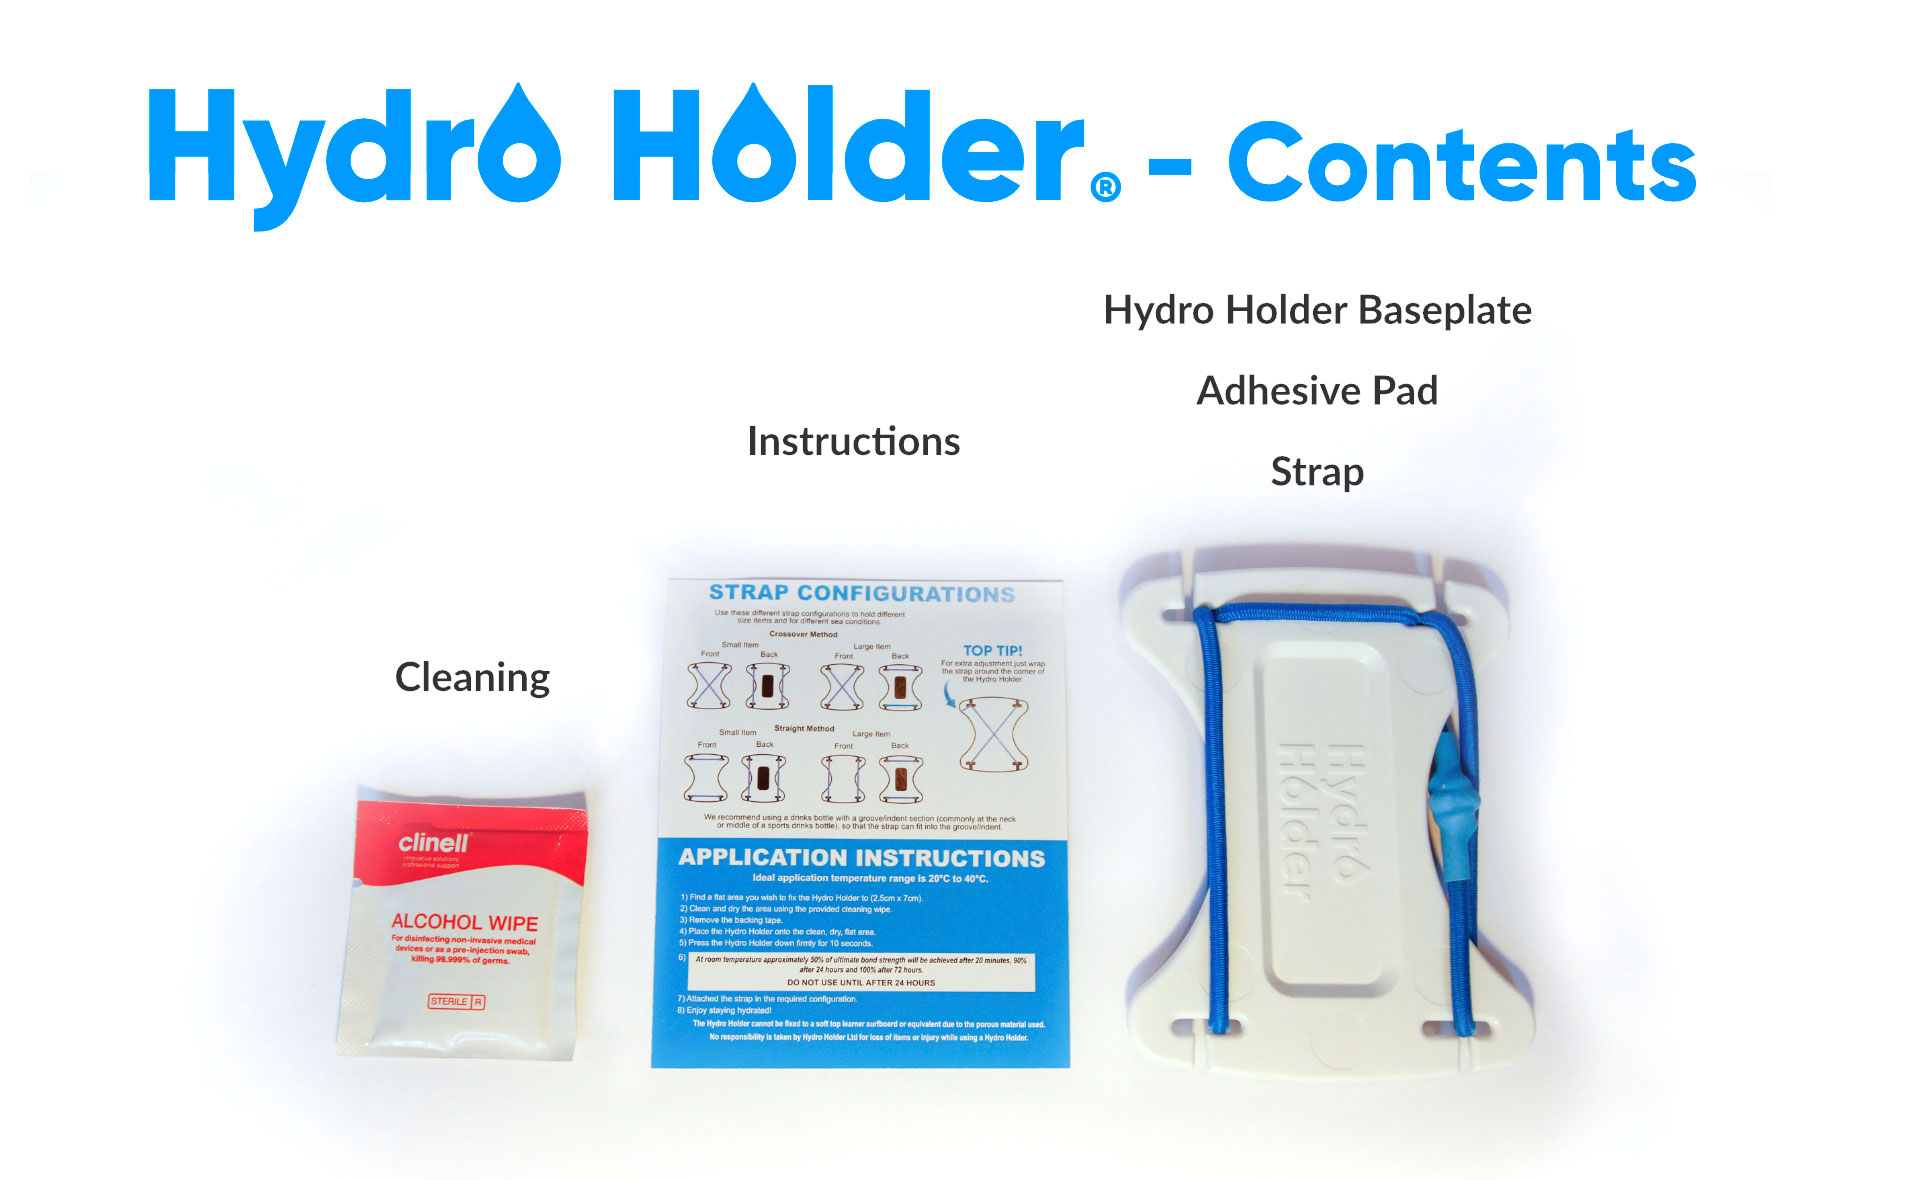 Hydro-Holder---Contents